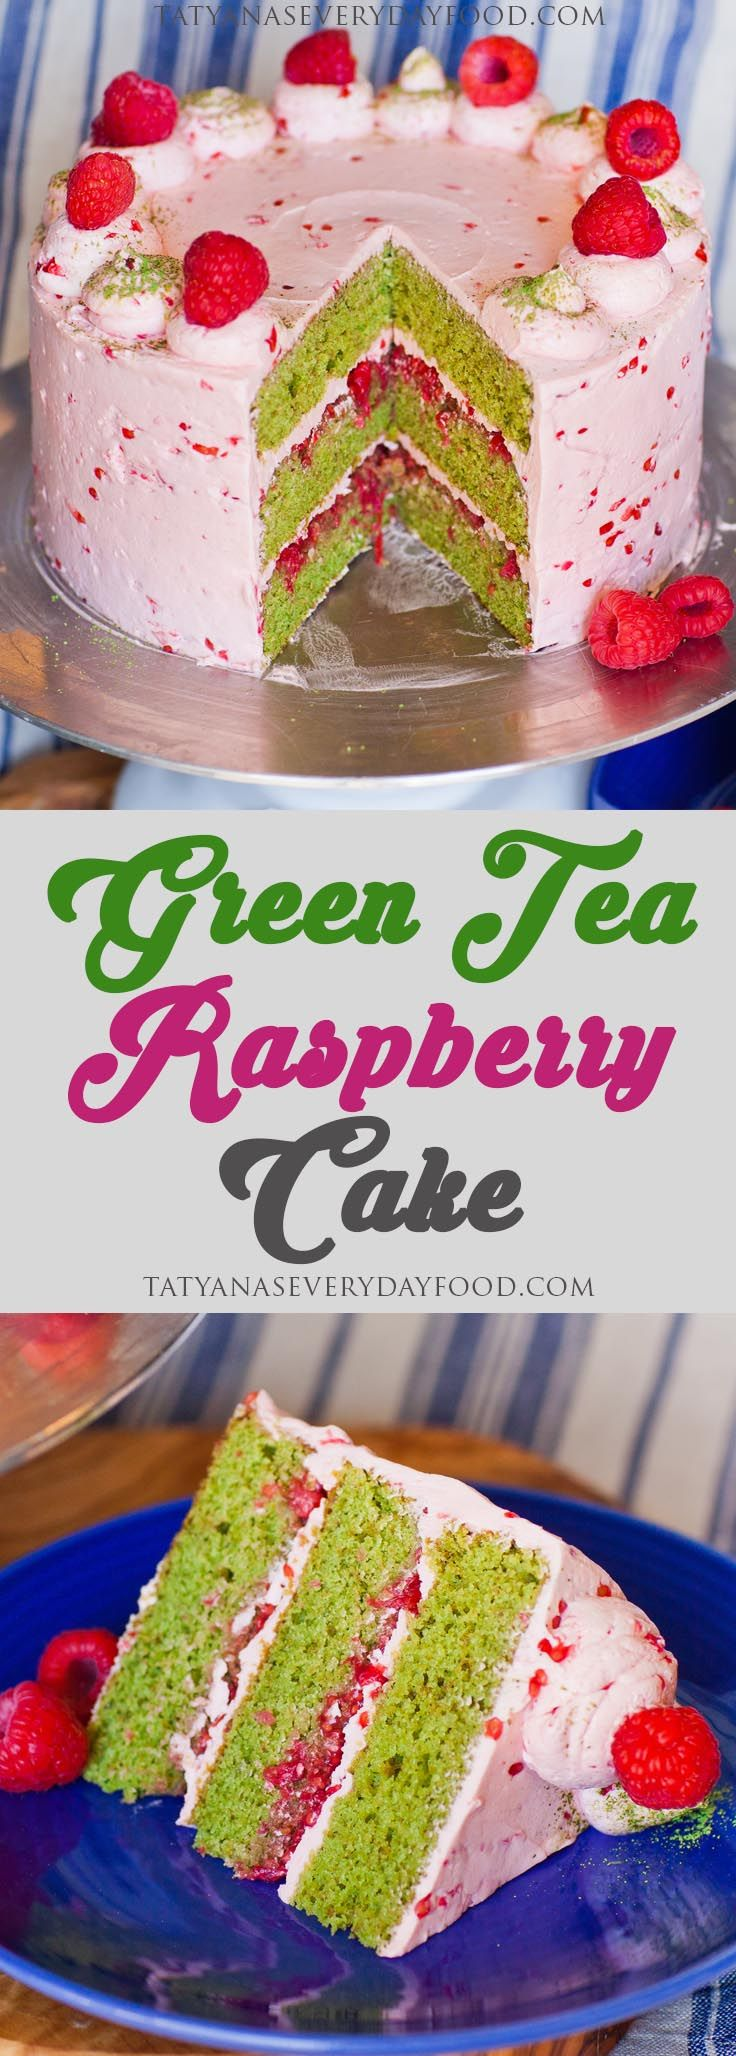 Green tea cakes are the newest novelty but this green tea cake takes the cake, literally! My green tea cake is loaded with fresh raspberries on the inside and frosted with a creamy raspberry buttercream! The green tea flavor is made intense by adding lots of matcha tea powder right into the cake batter. If […]